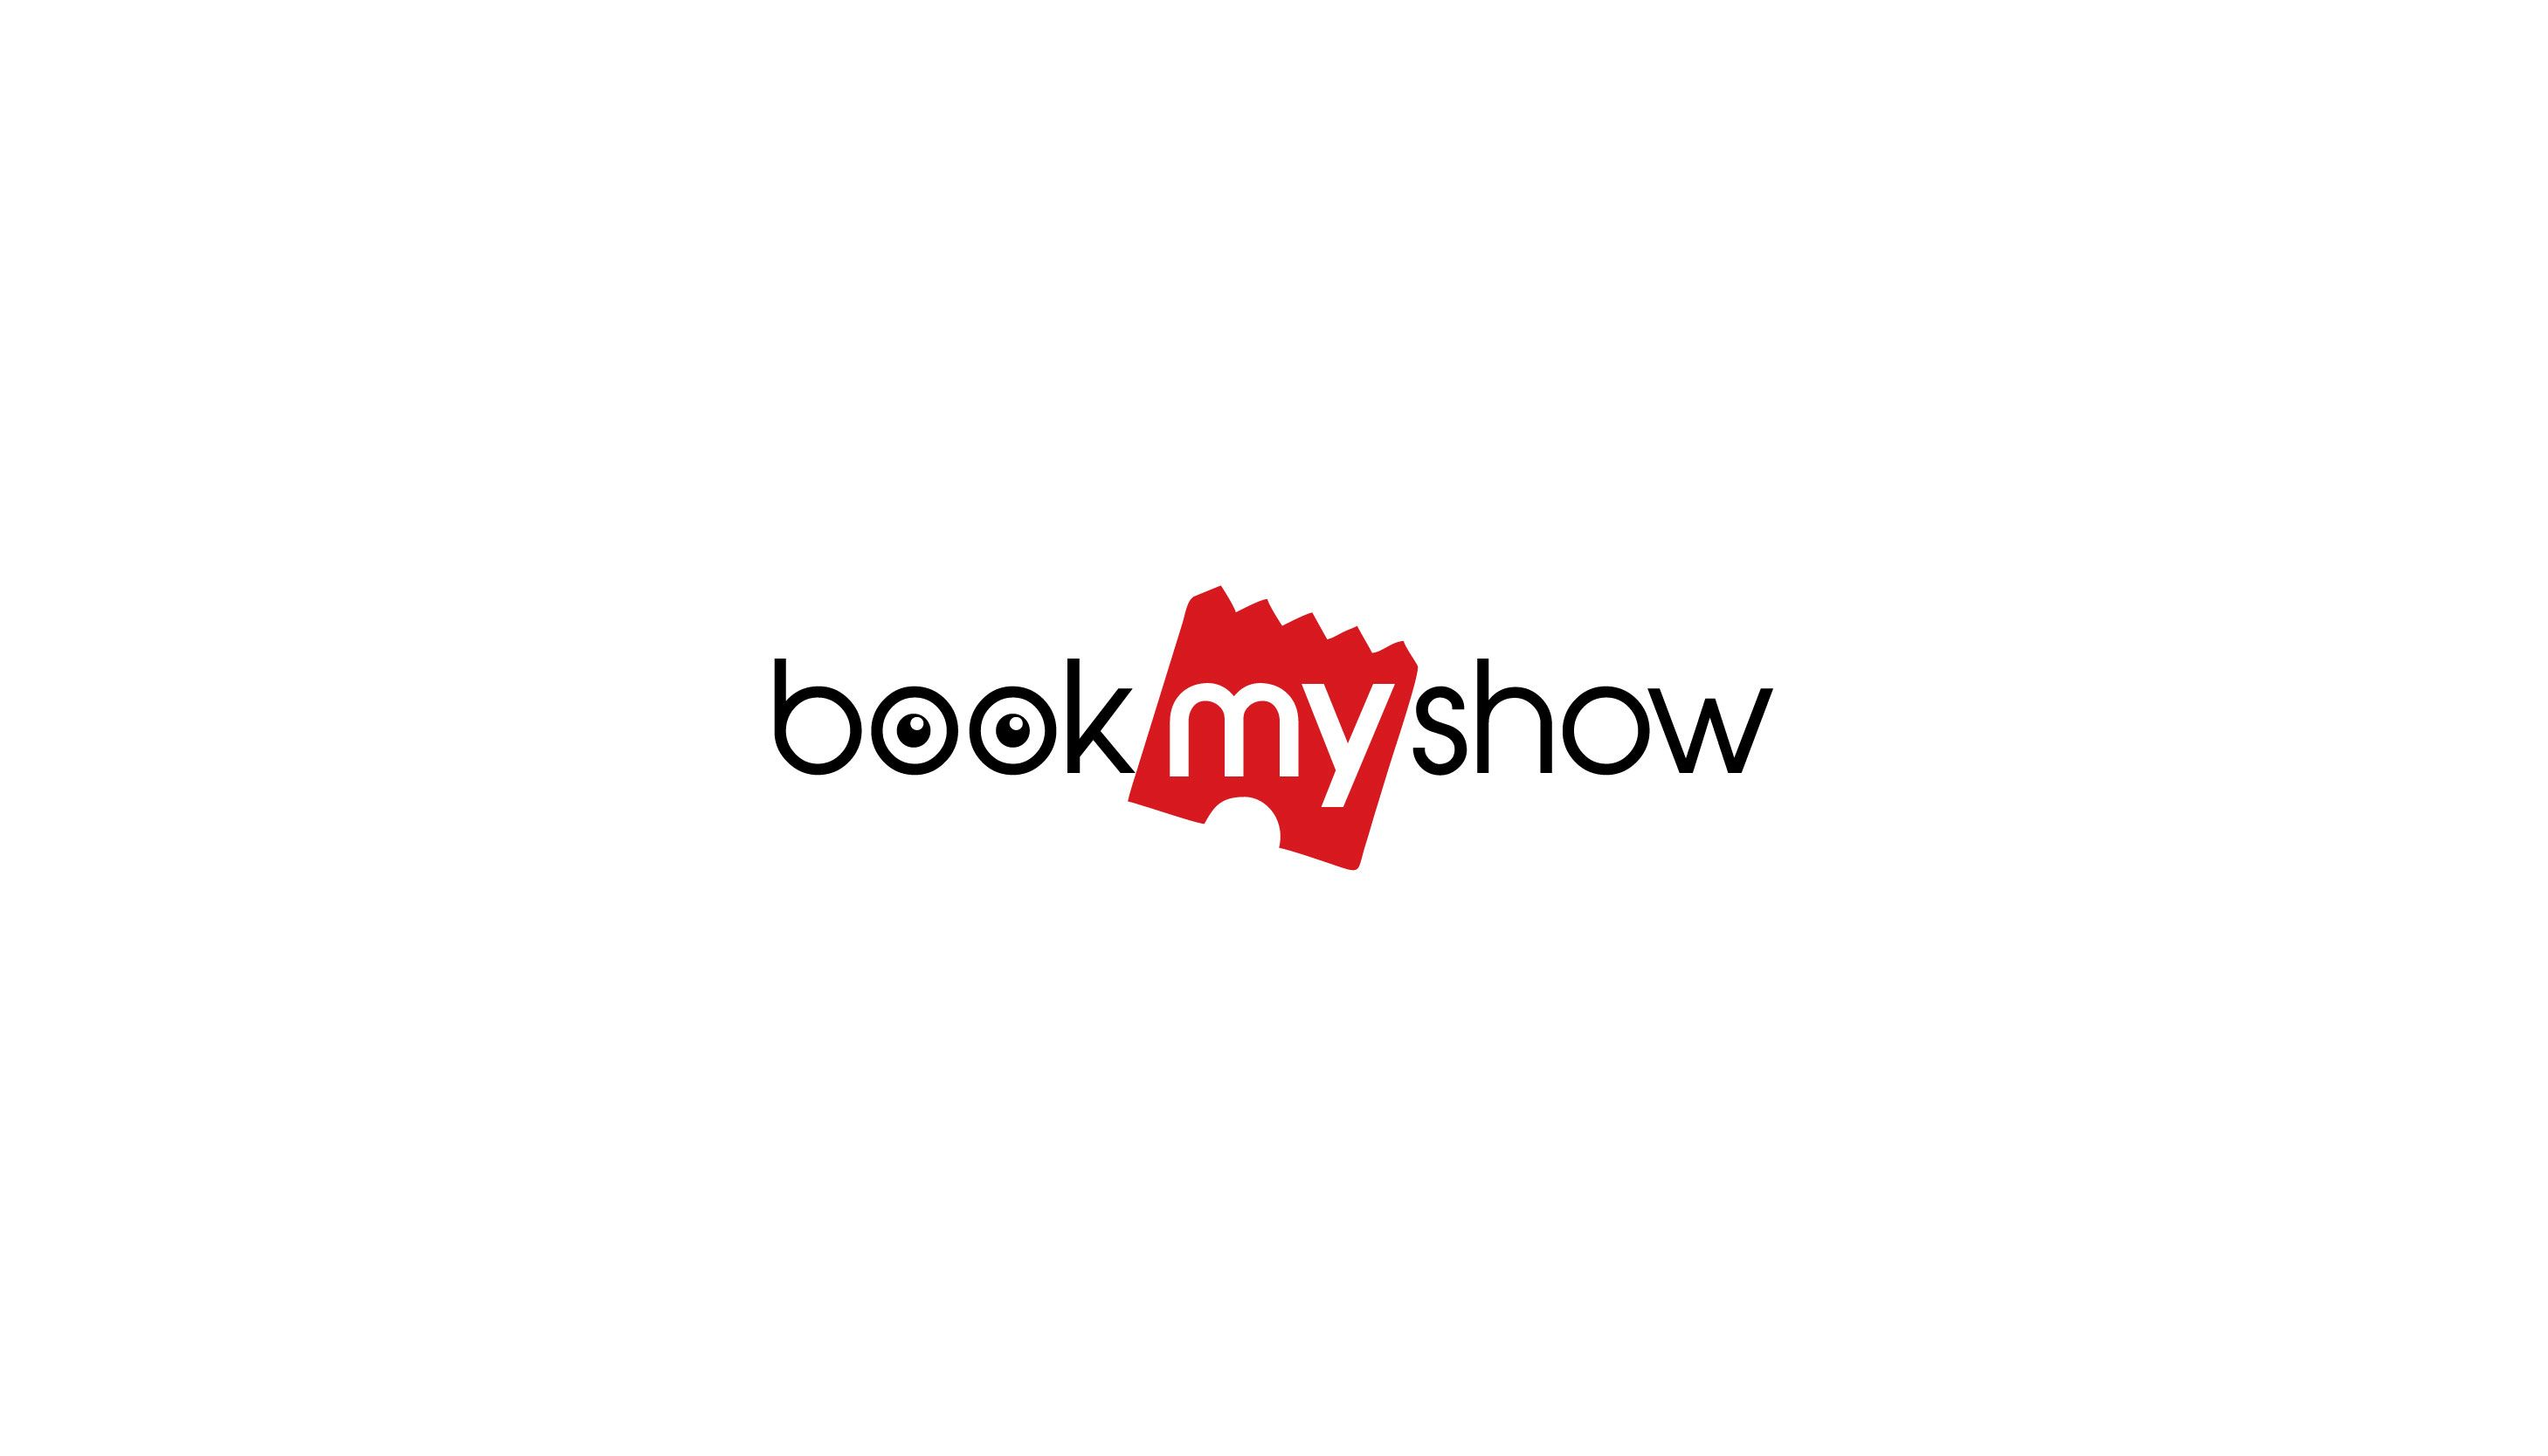 BookMyShow offers showtimes, movie tickets, reviews